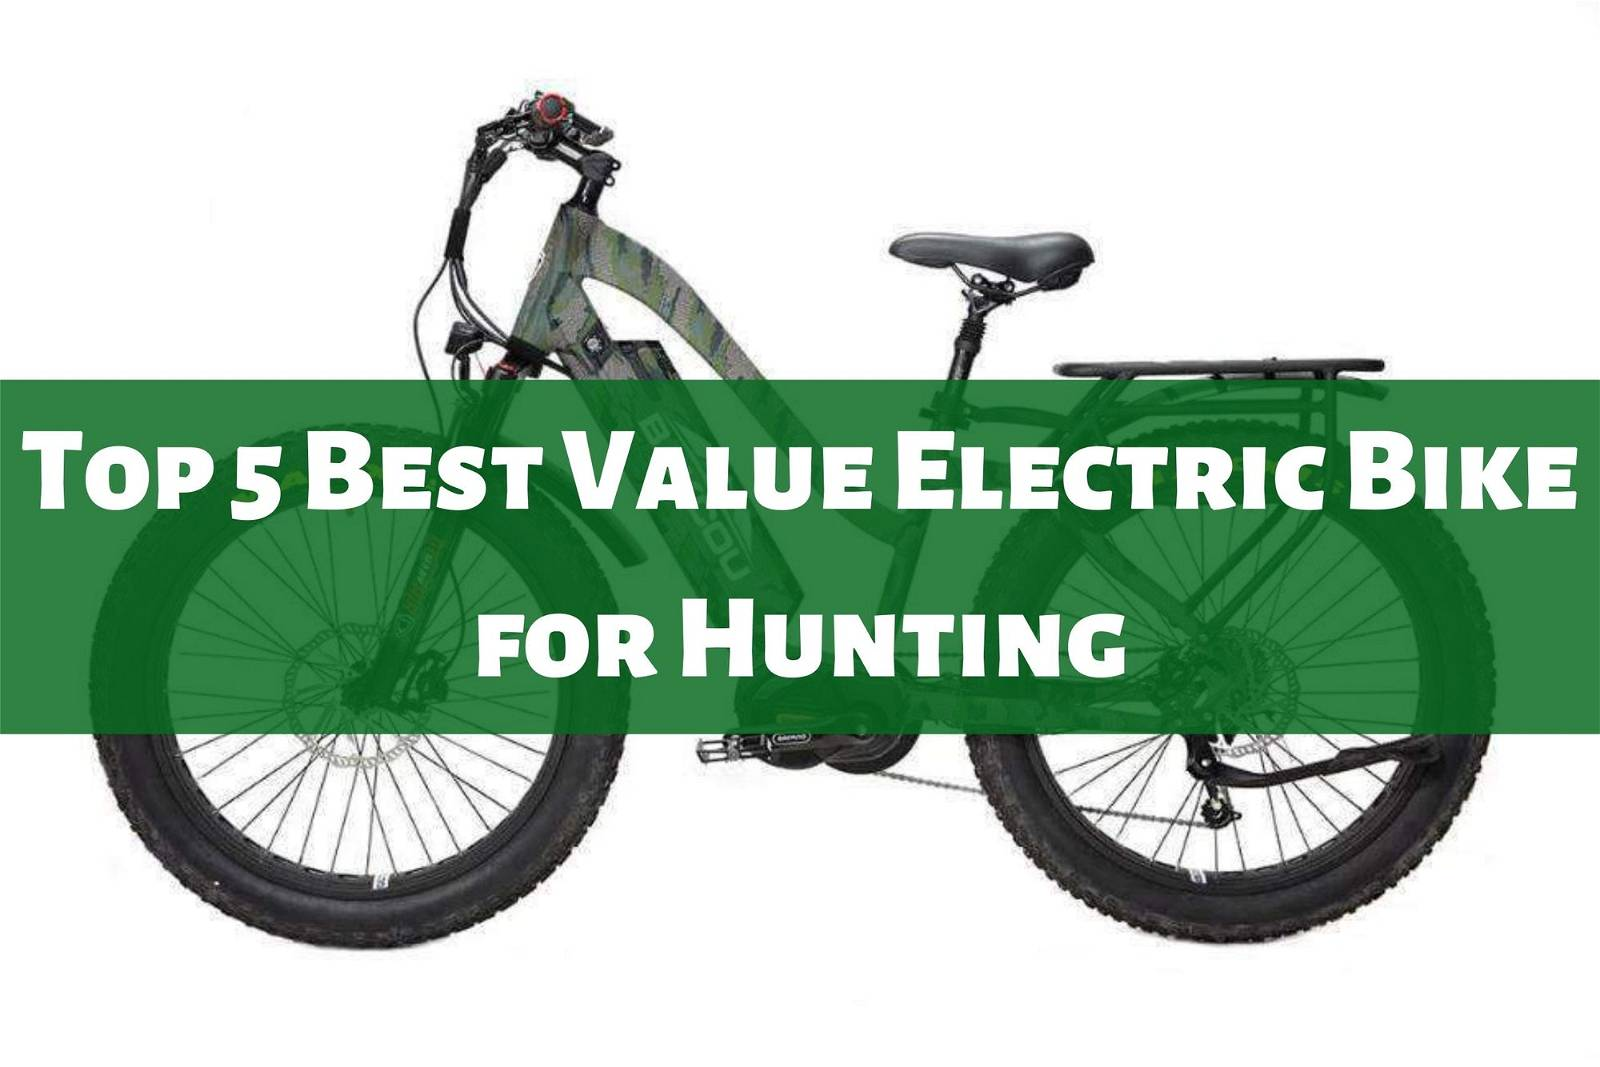 Top 5 Best Value Electric Bike for Hunting